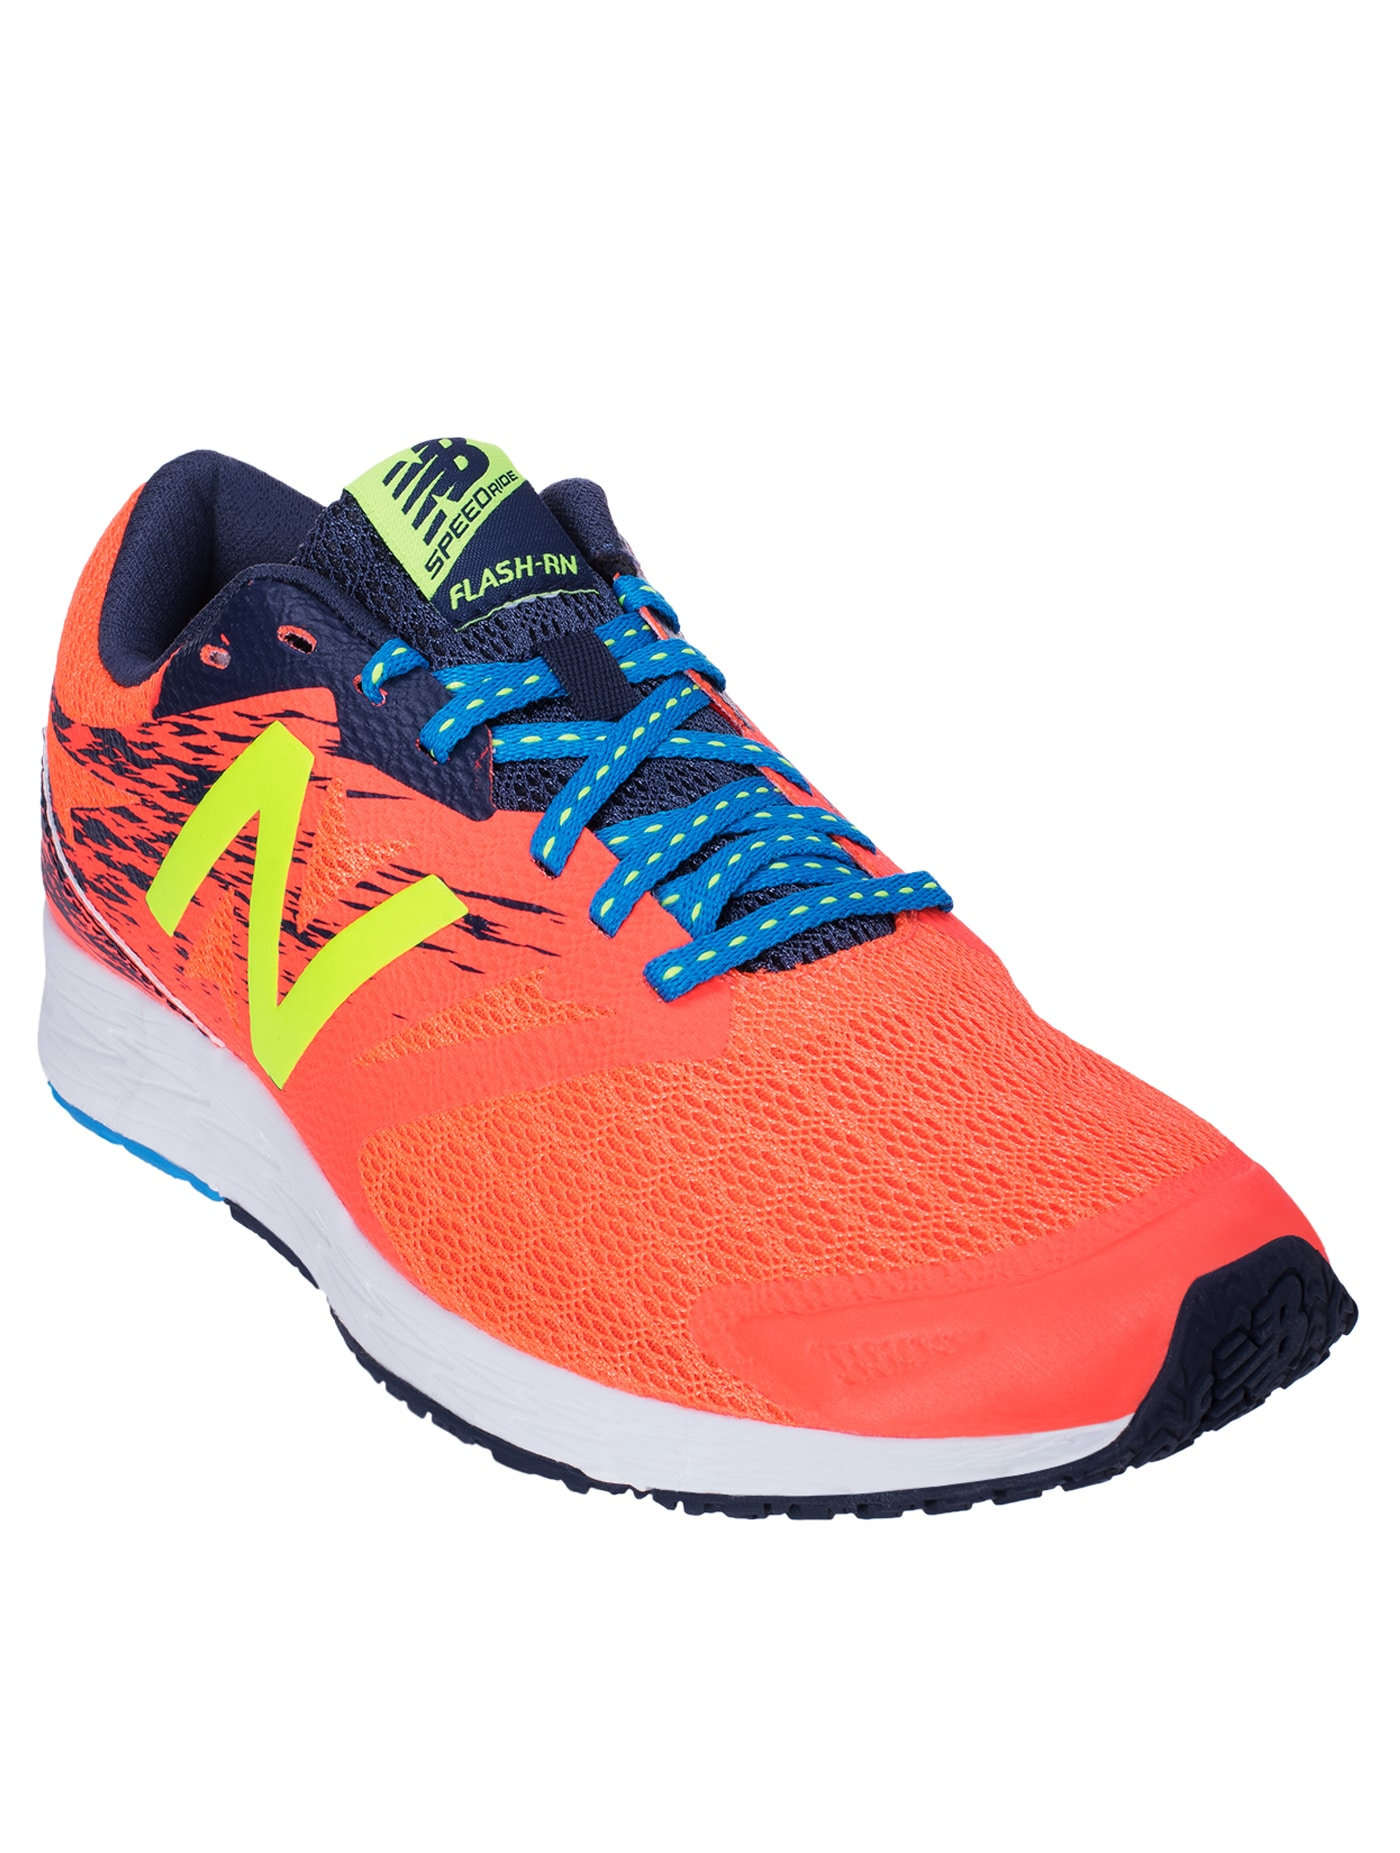 new balance Men's Flash Running Shoes: Buy Online at Low